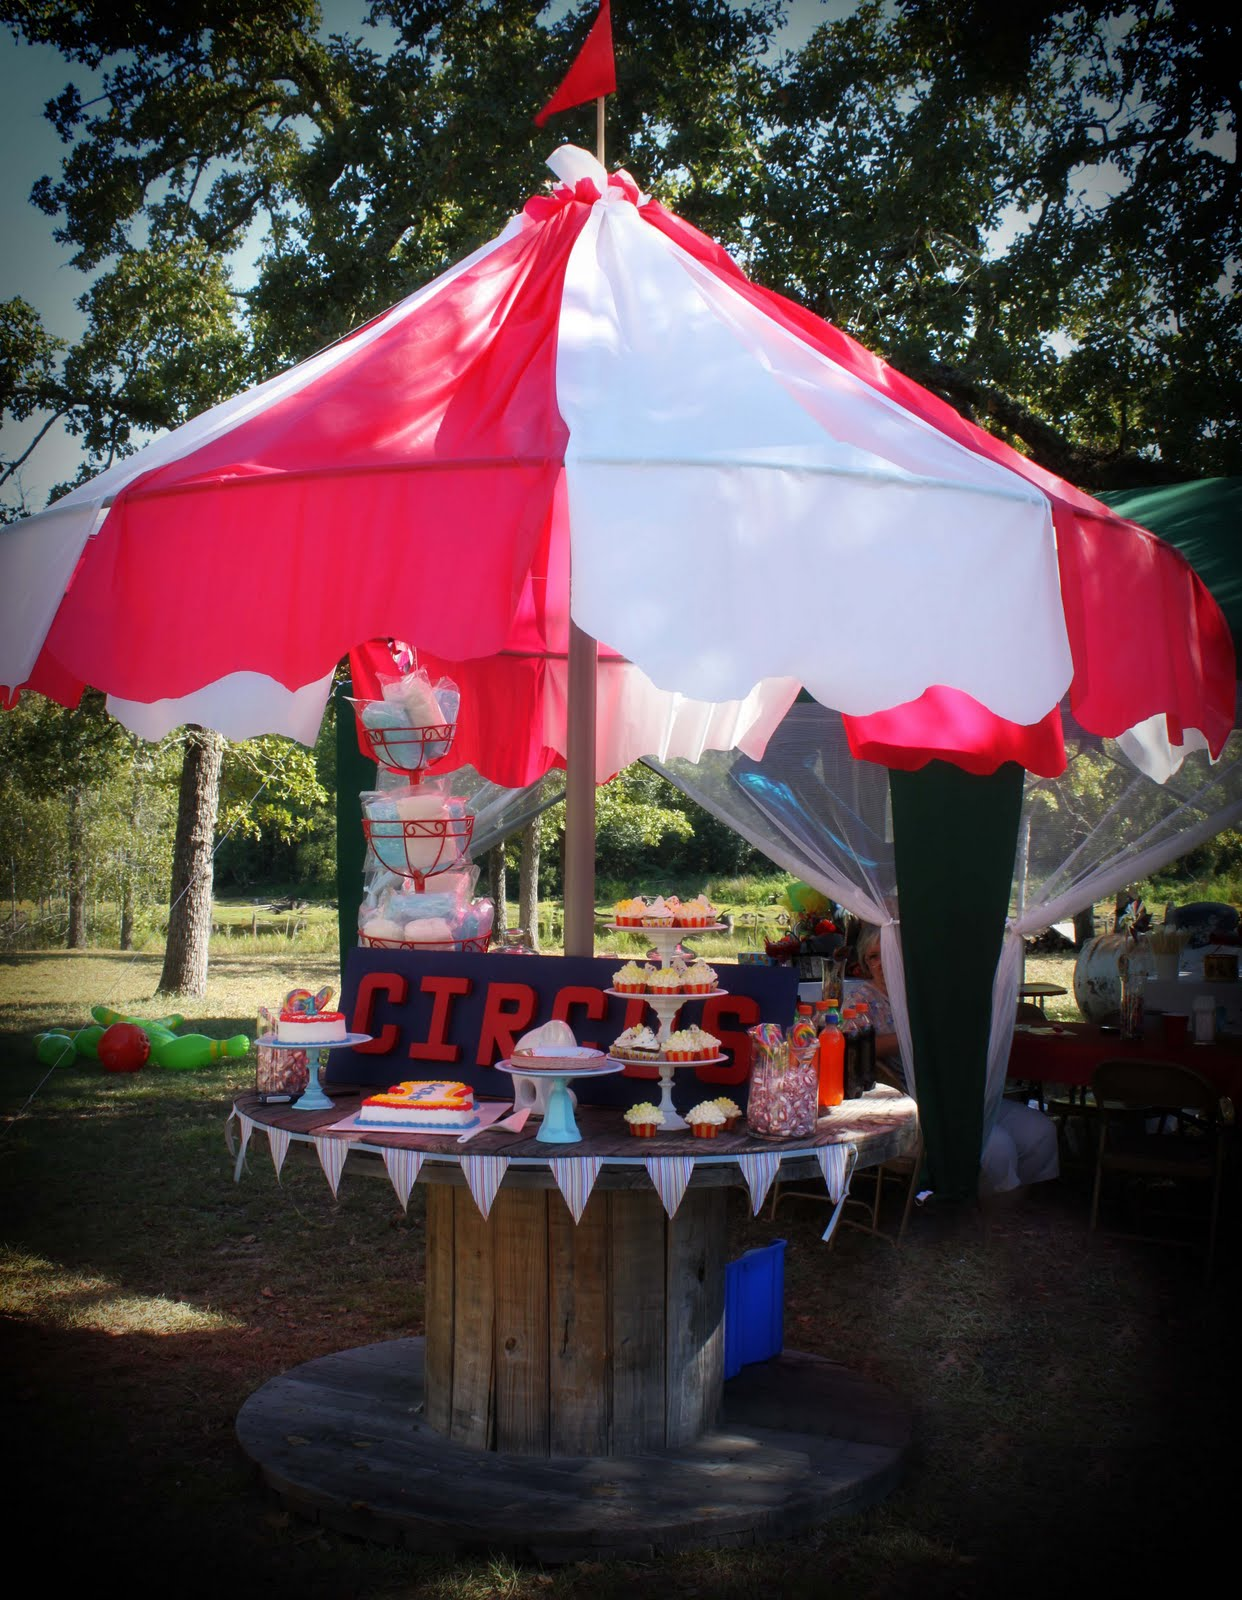 DIY Carnival Party Big Top Tent : circus tent decorations - memphite.com